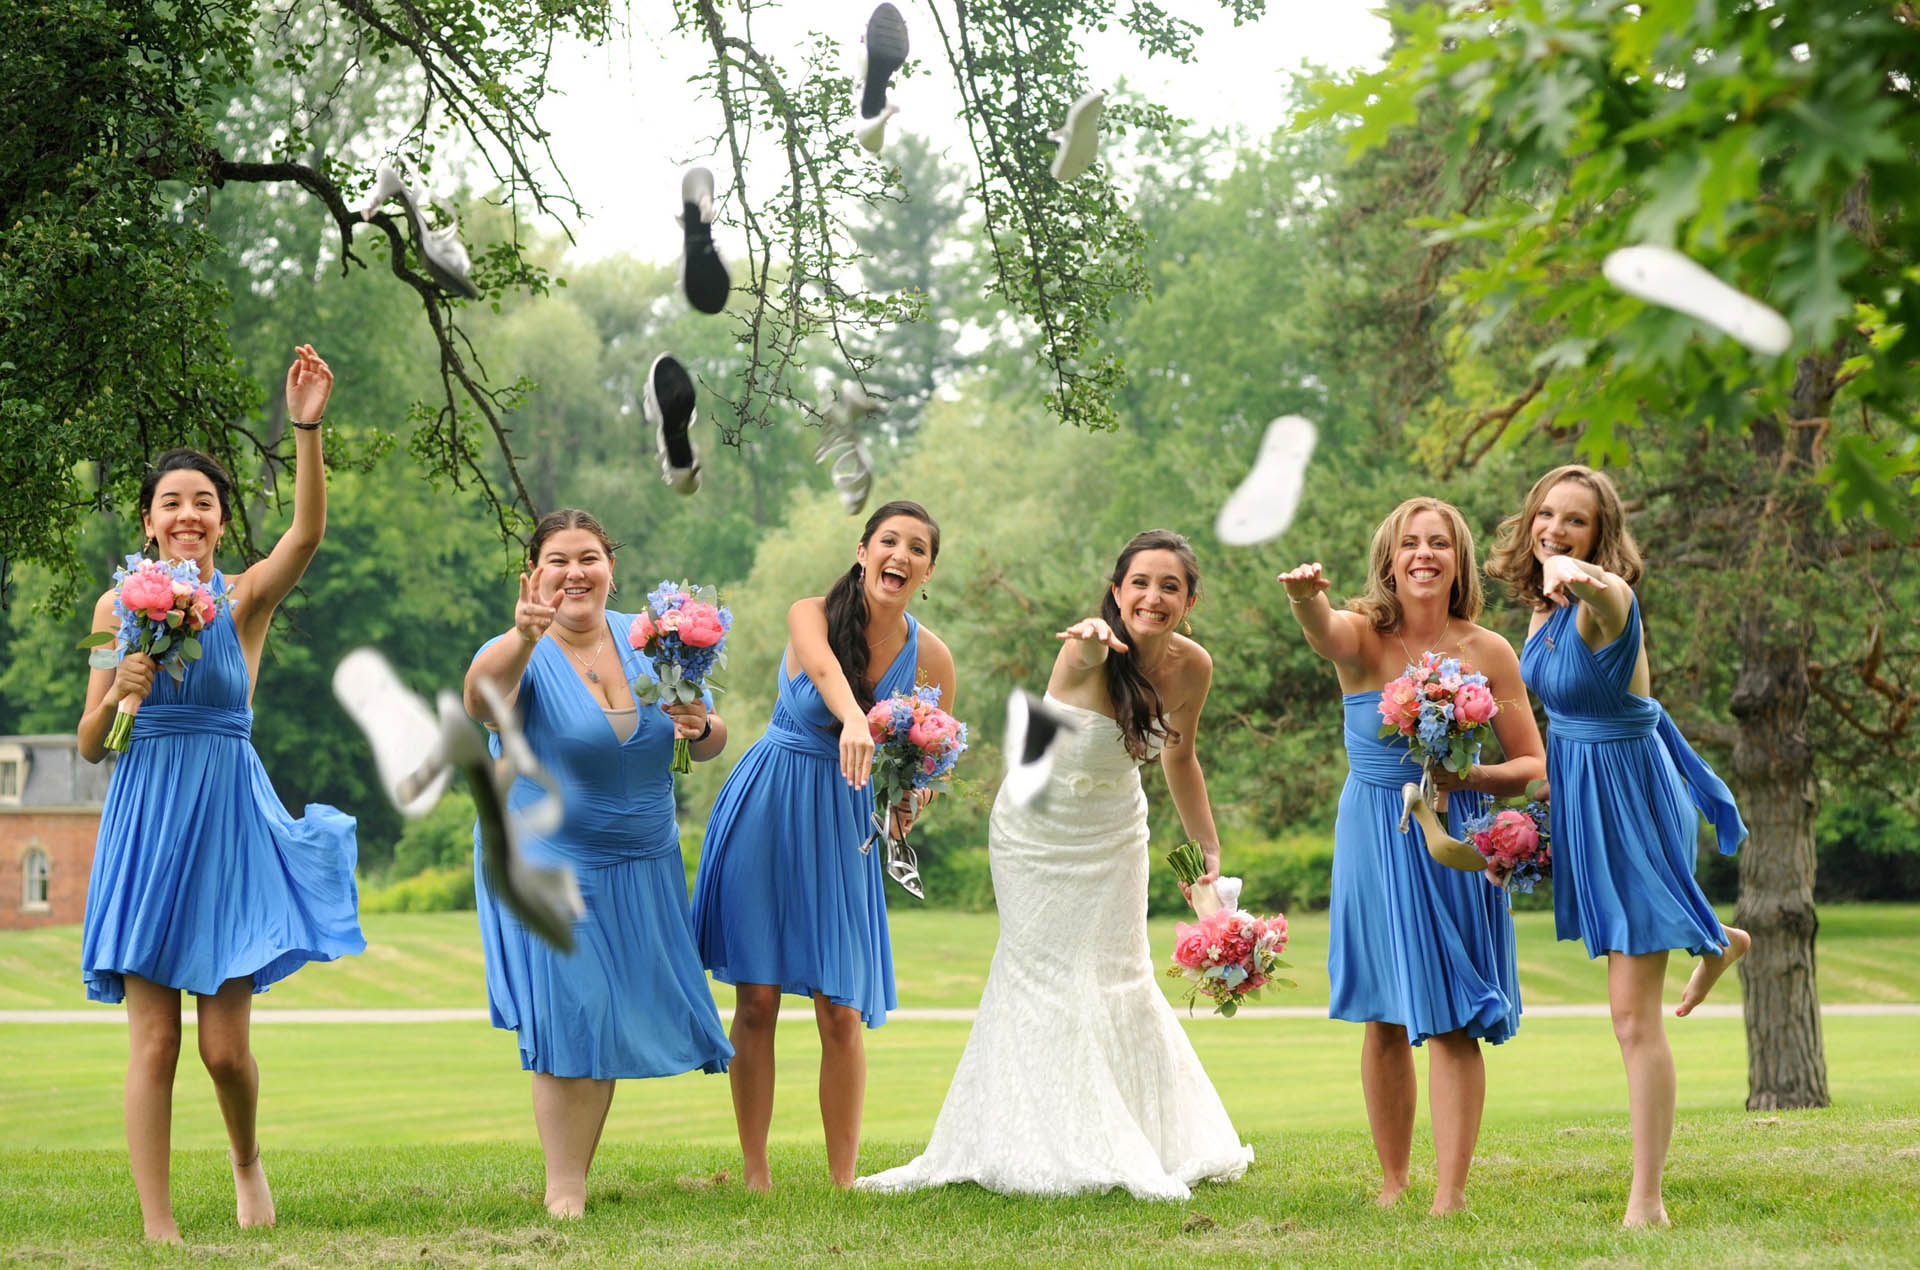 michigan wedding photographer takes funny photos of wedding parties throwing their shoes at the photographer at Addison Oaks.